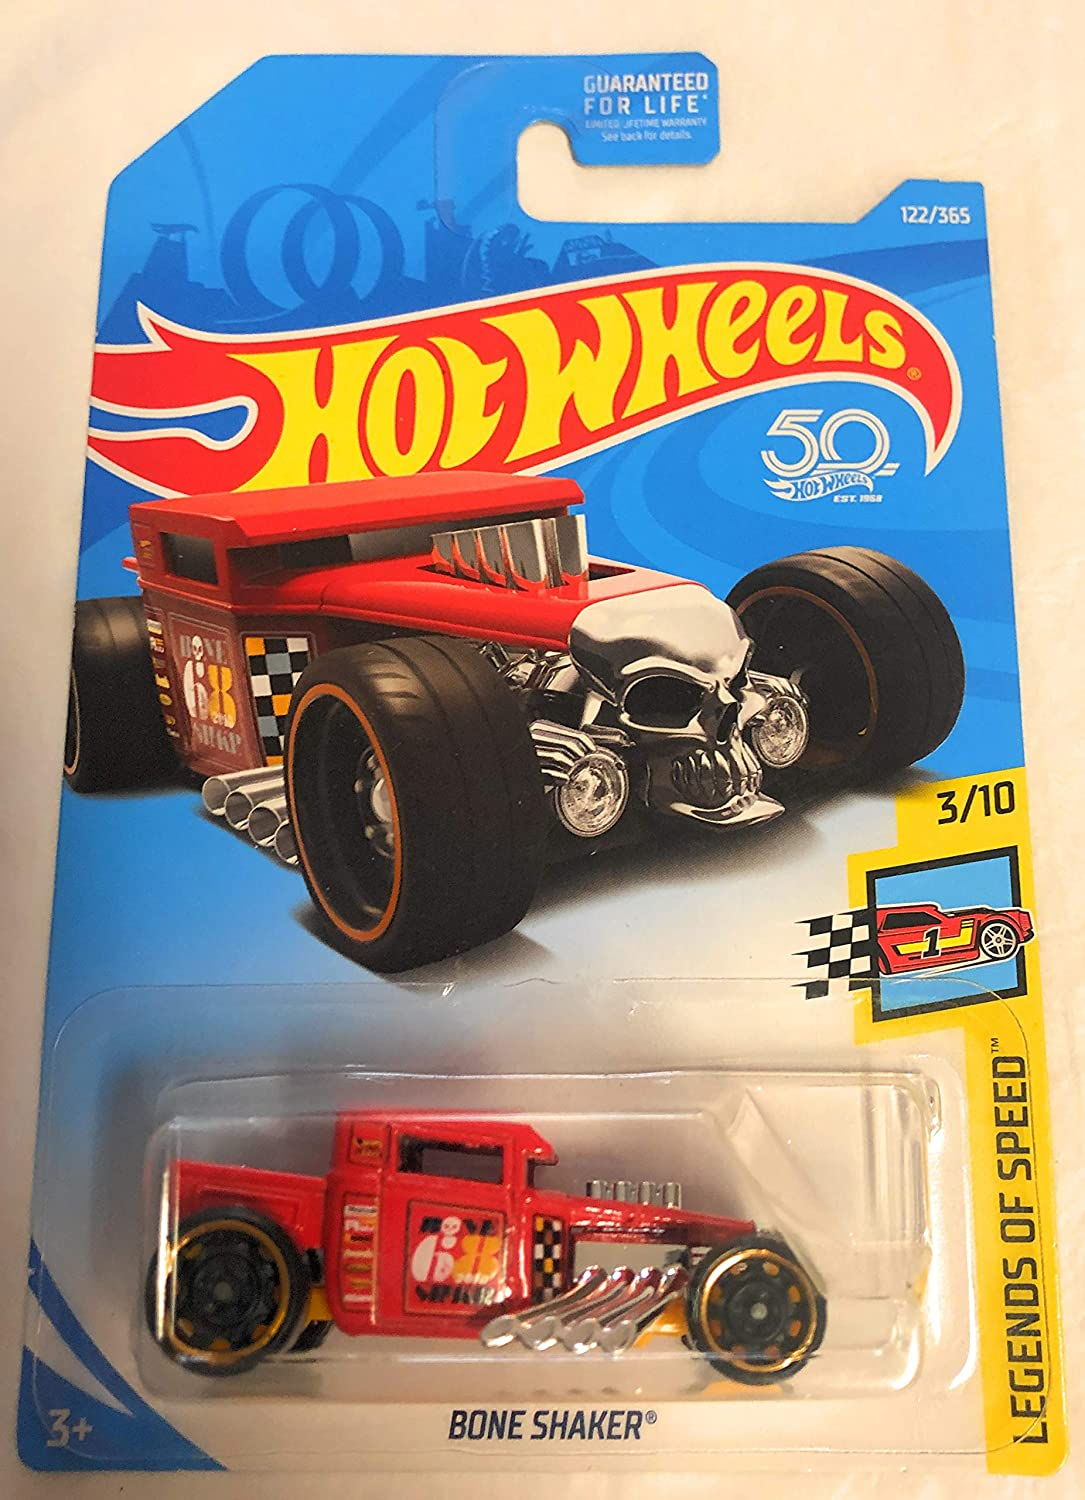 2018 Hot Wheels Bone Shaker Red Anniversary Card 122/365 Legends of Speed 3/10 Die Cast 1:64 Scale Toy Car